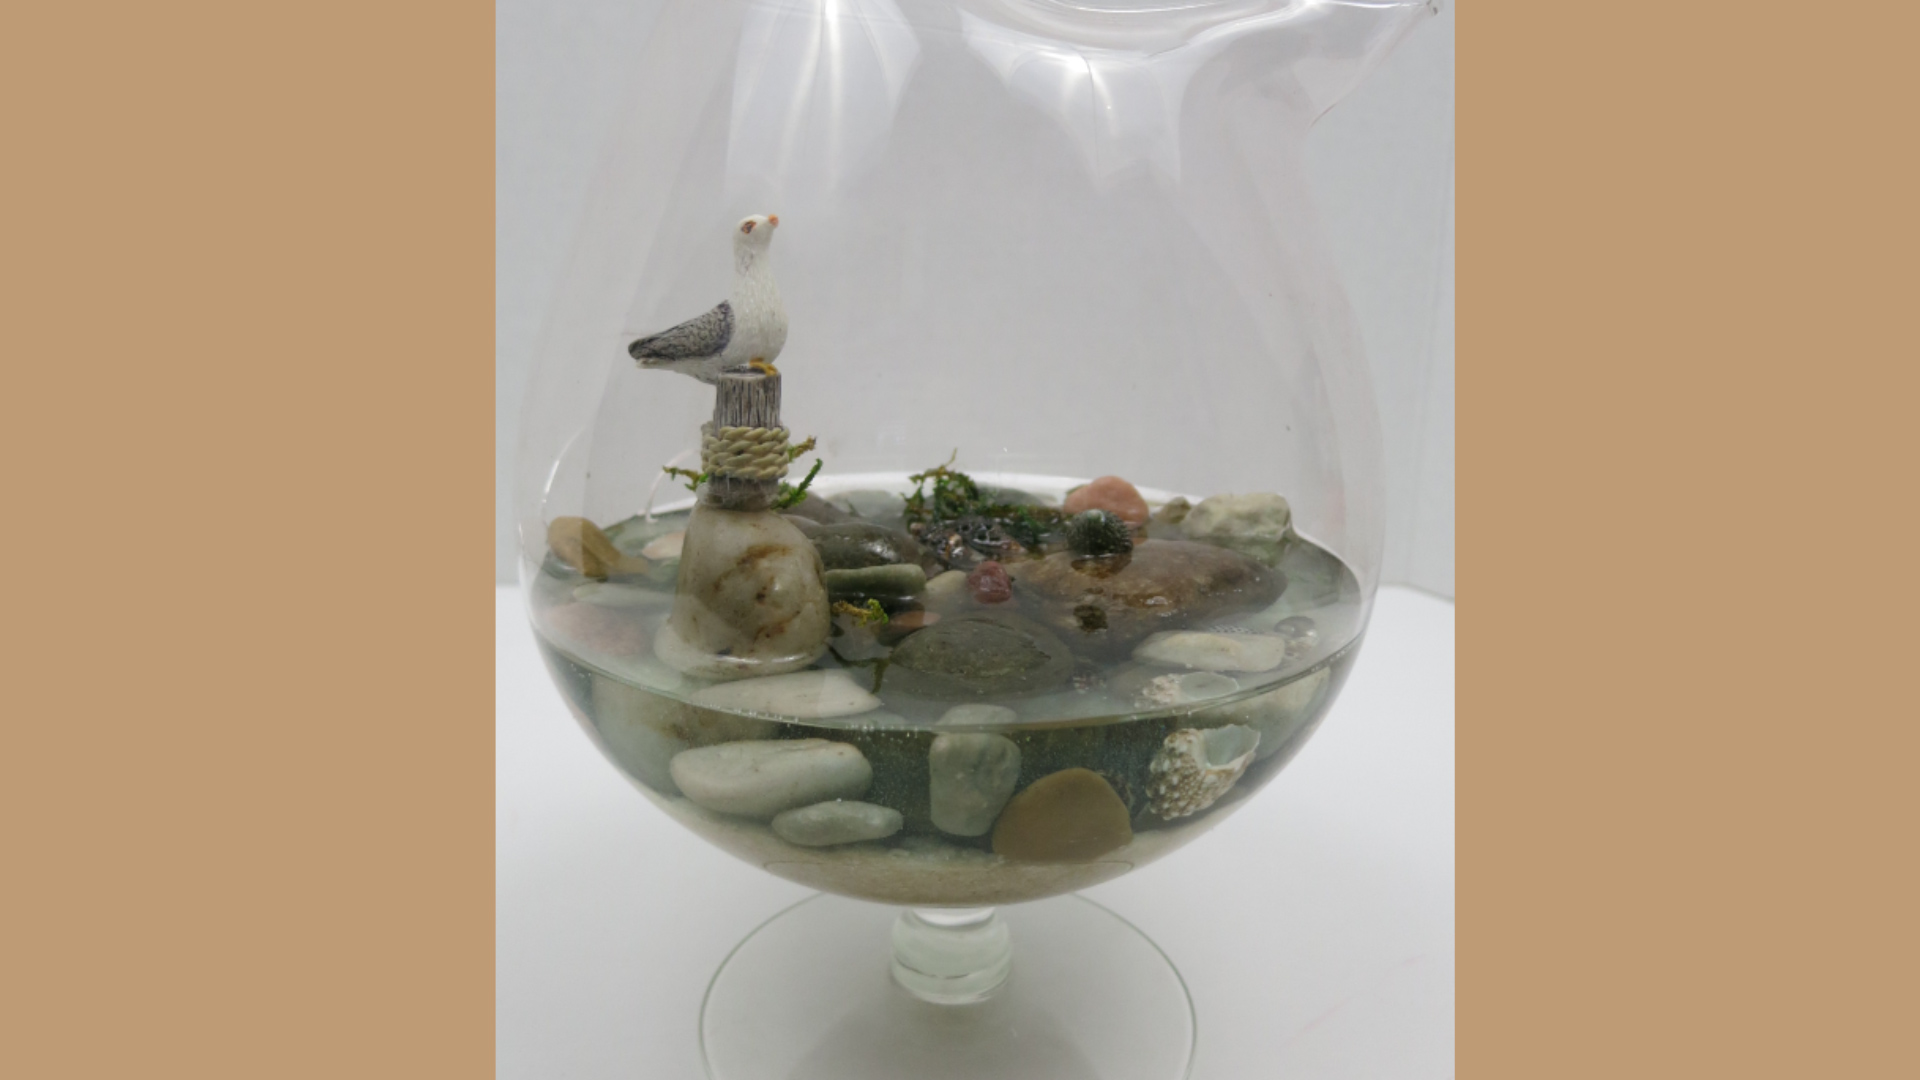 Resin Sea Shore Scene with Seagull, Sand and Shells.jpg